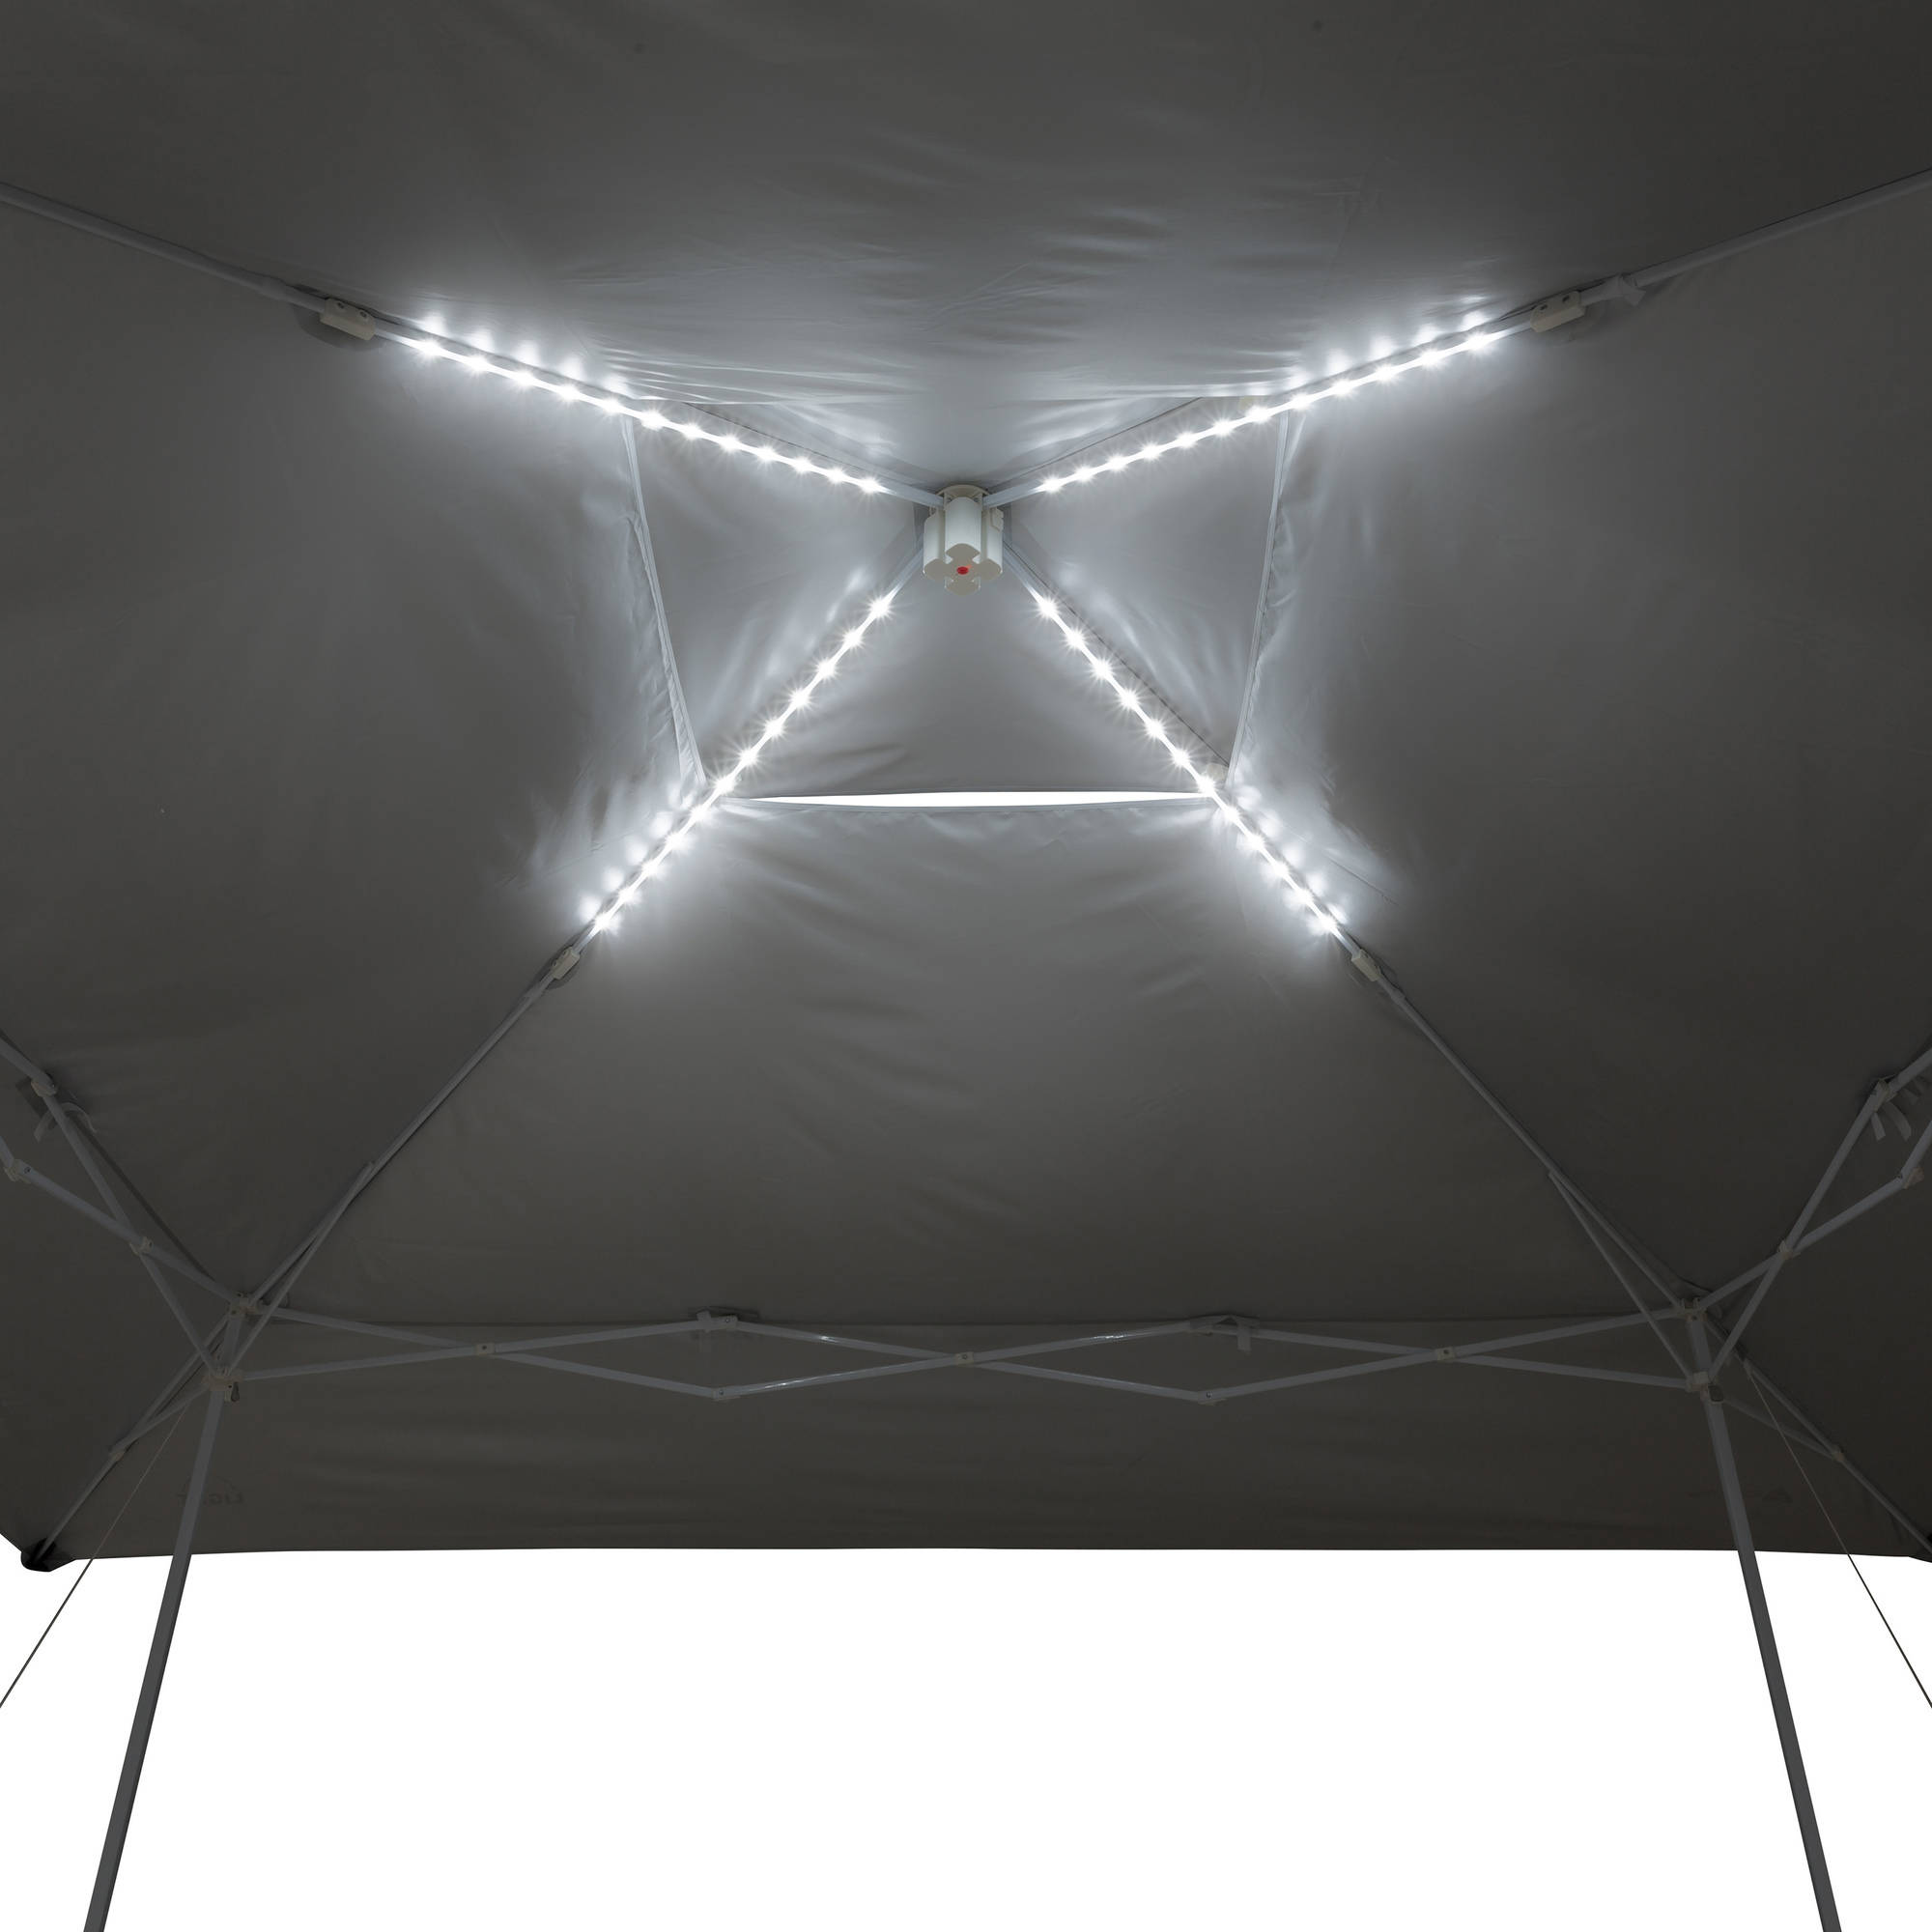 ozark trail 14 x 14 instant canopy with led lighting system